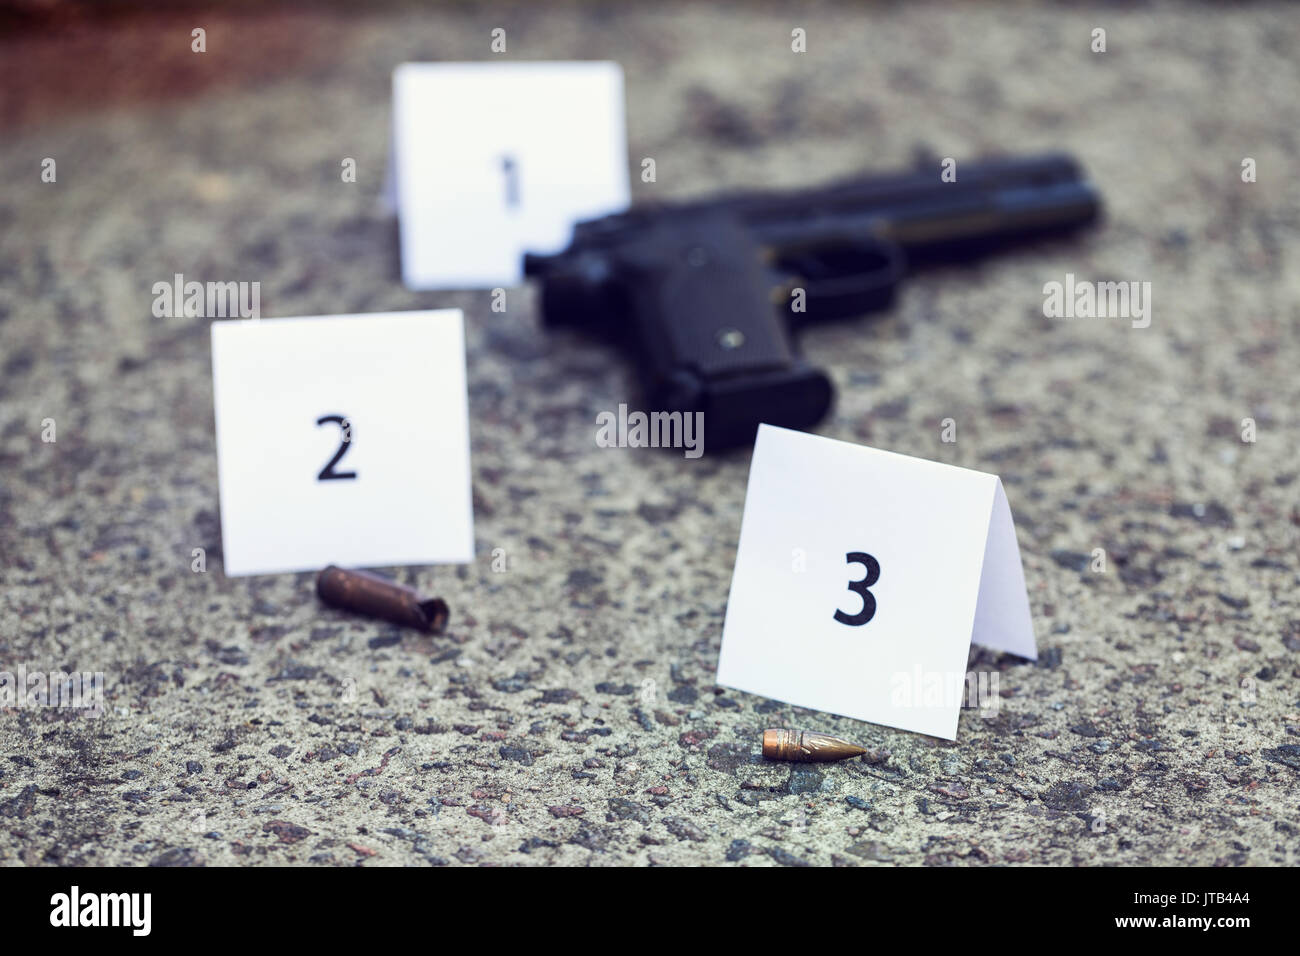 crime scene with evidences and markers on the asphalt - Stock Image